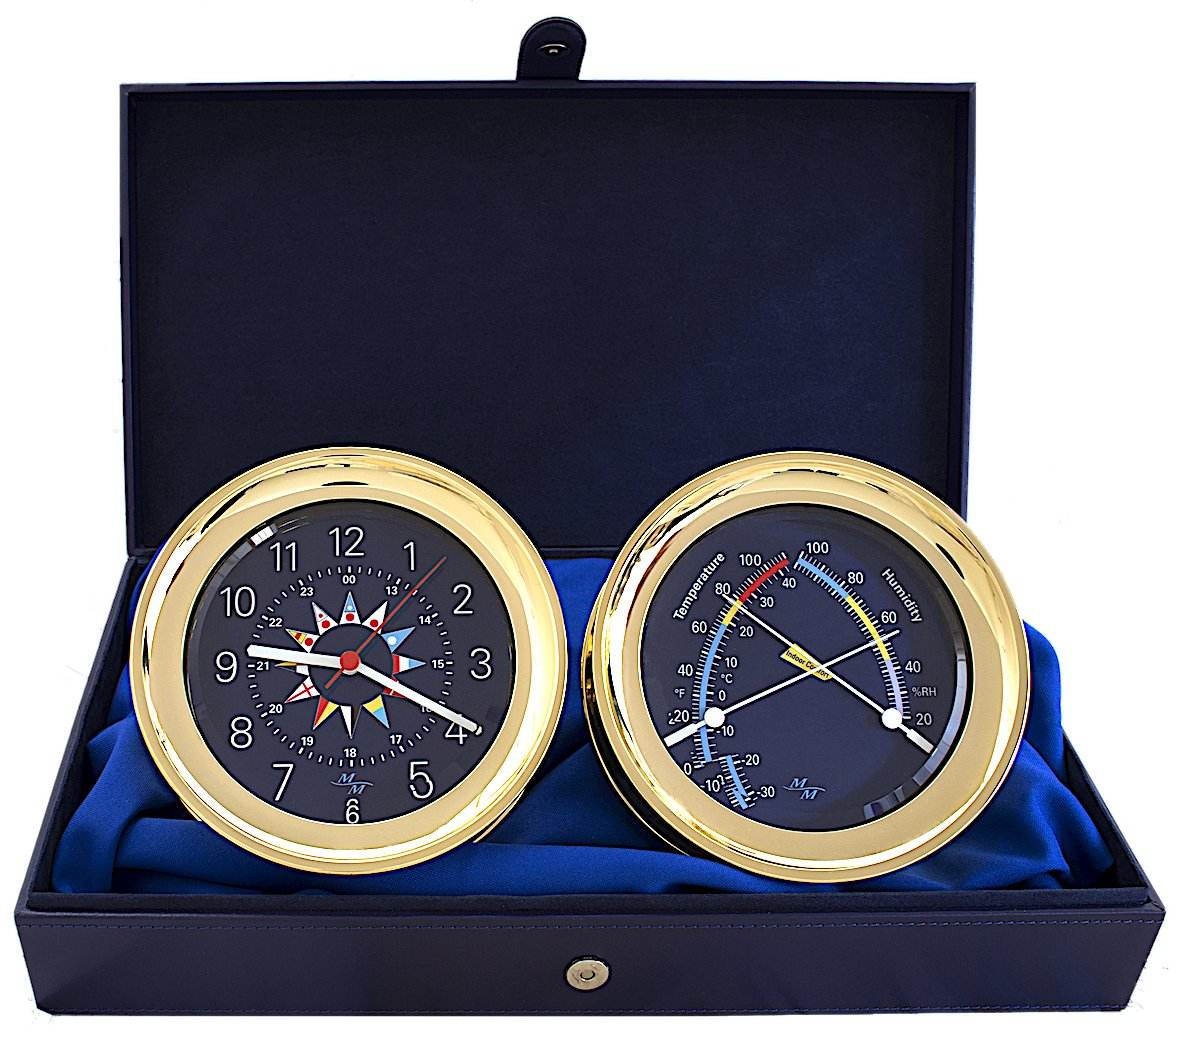 "MASTER-MARINER USA Blue Mariner Collection, Nautical Windlass Gift Set, 5.85"" Diameter Clock and Comfort Meter Instruments, Gold Tone Finish, Blue Signal Flag DIal"